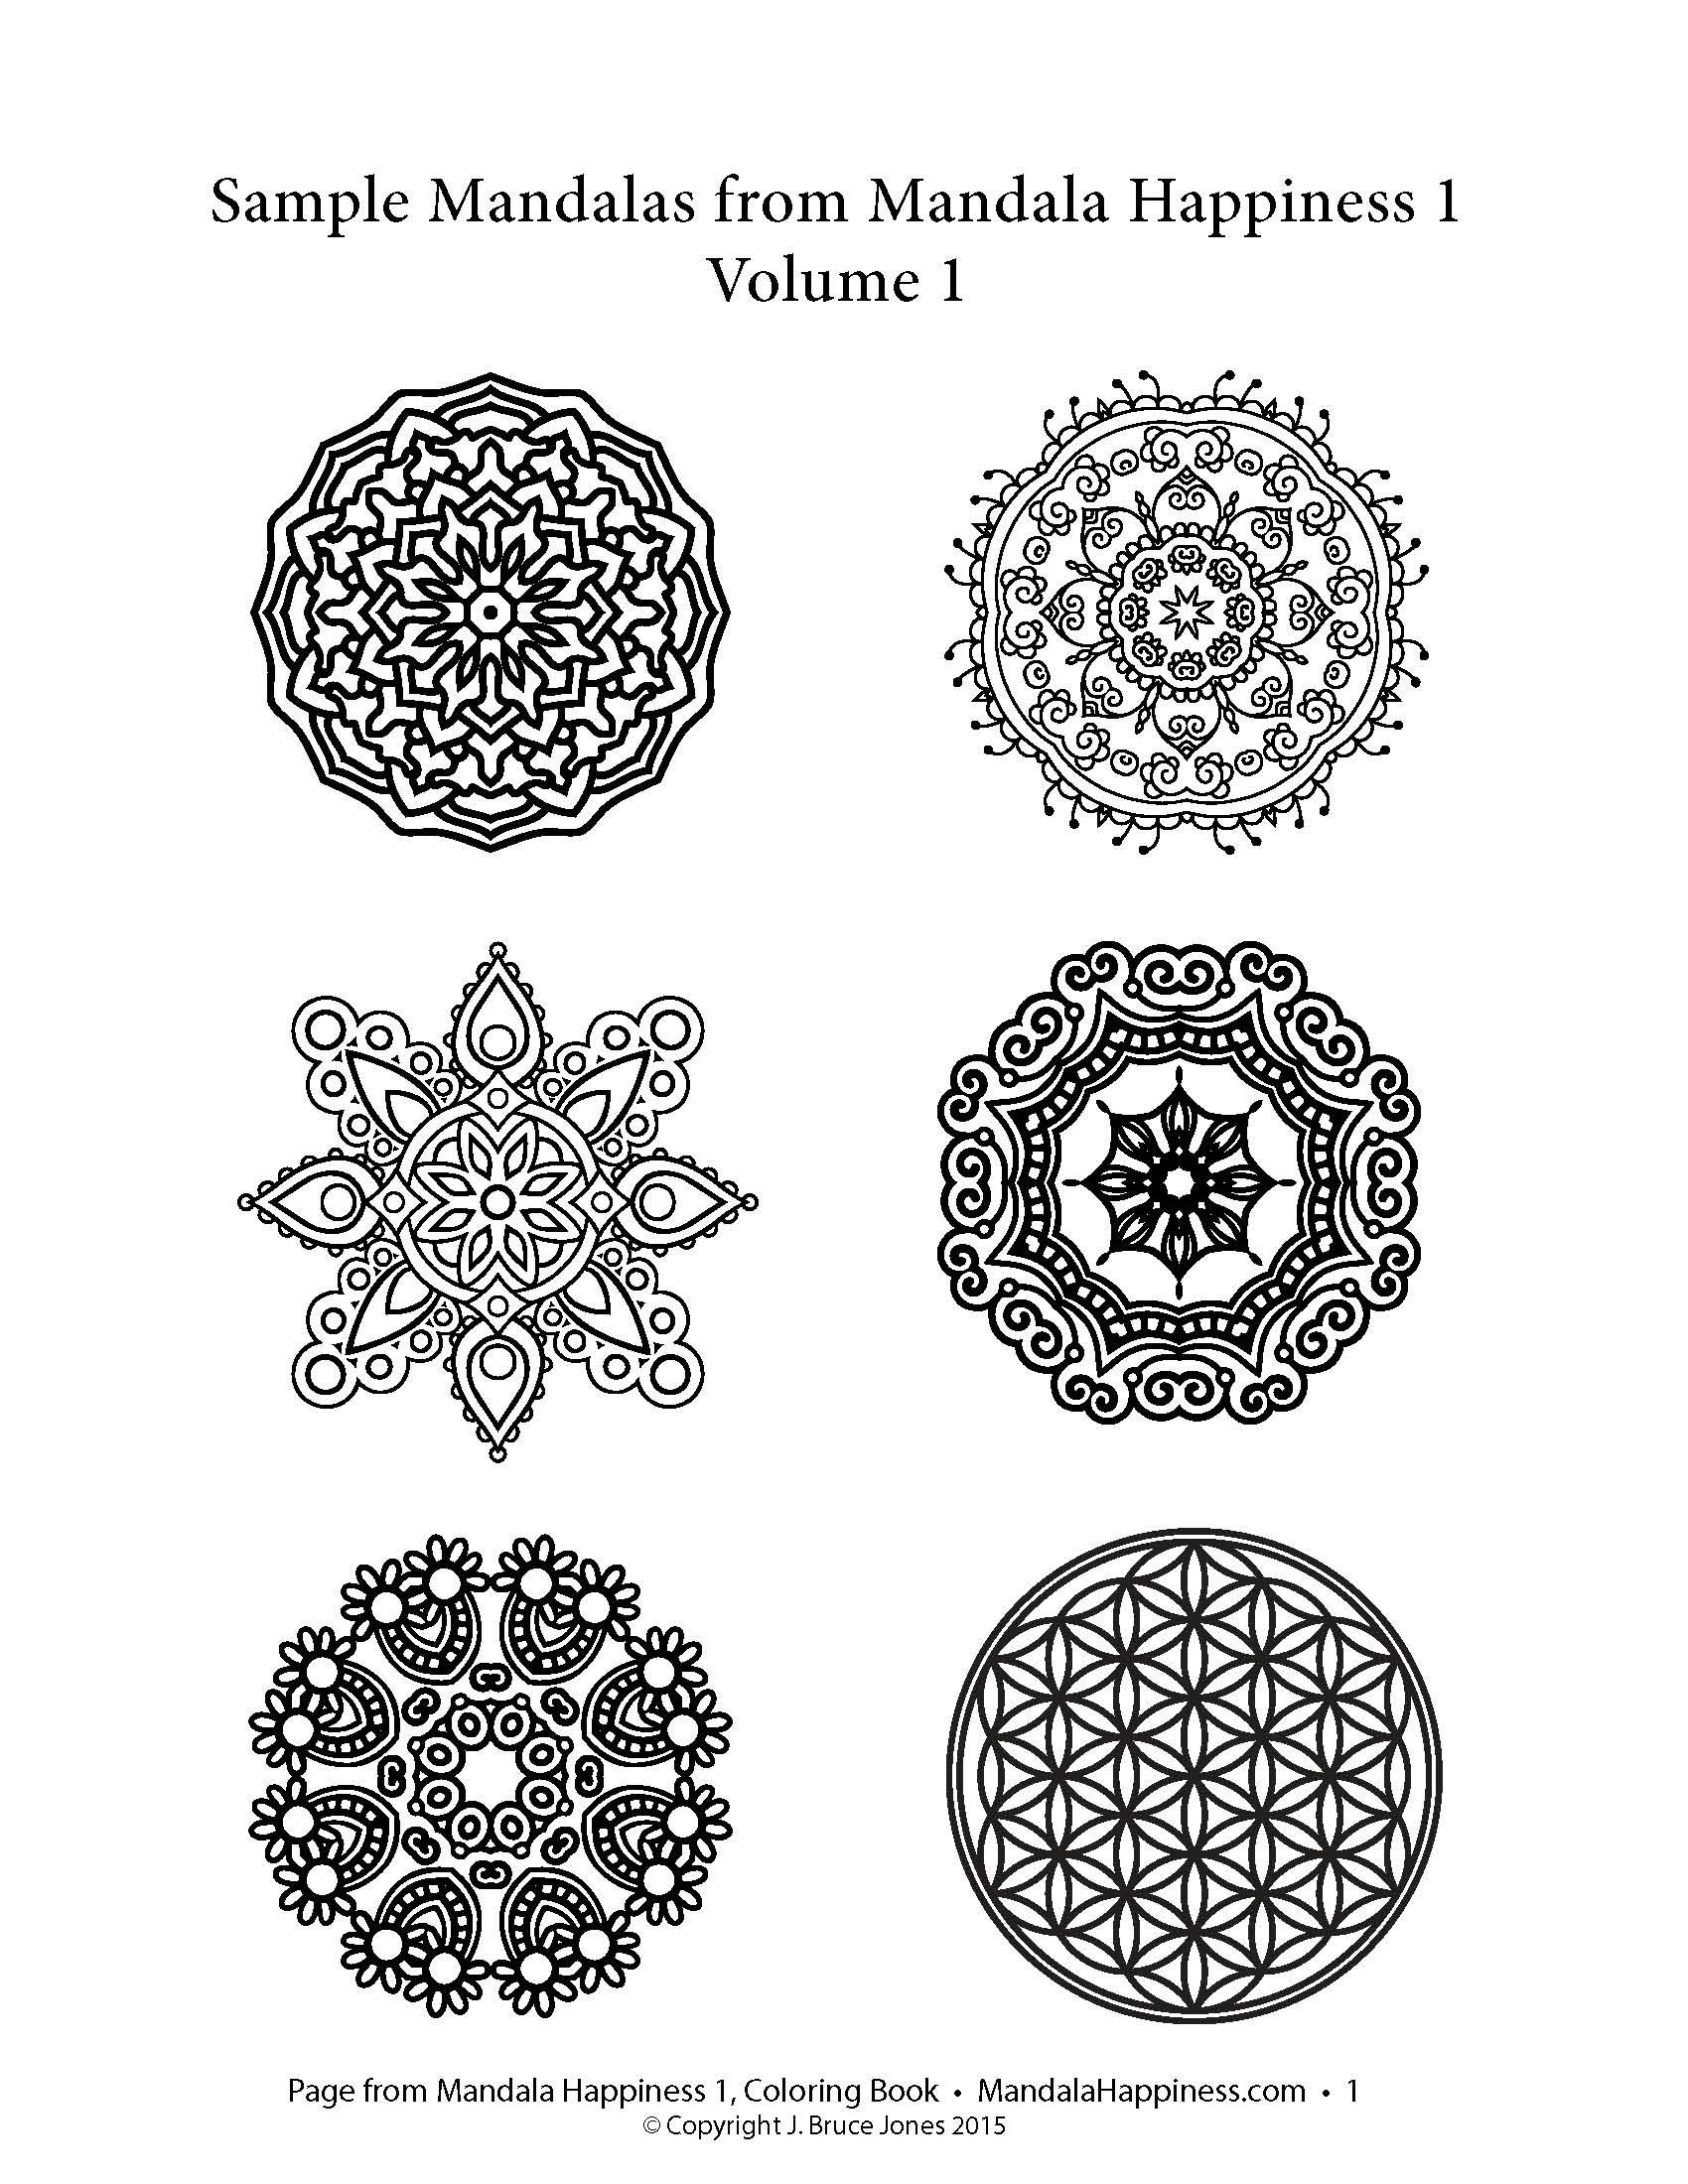 Sample Mandalas From Mandala Happiness 1 First Book In The Coloring Series